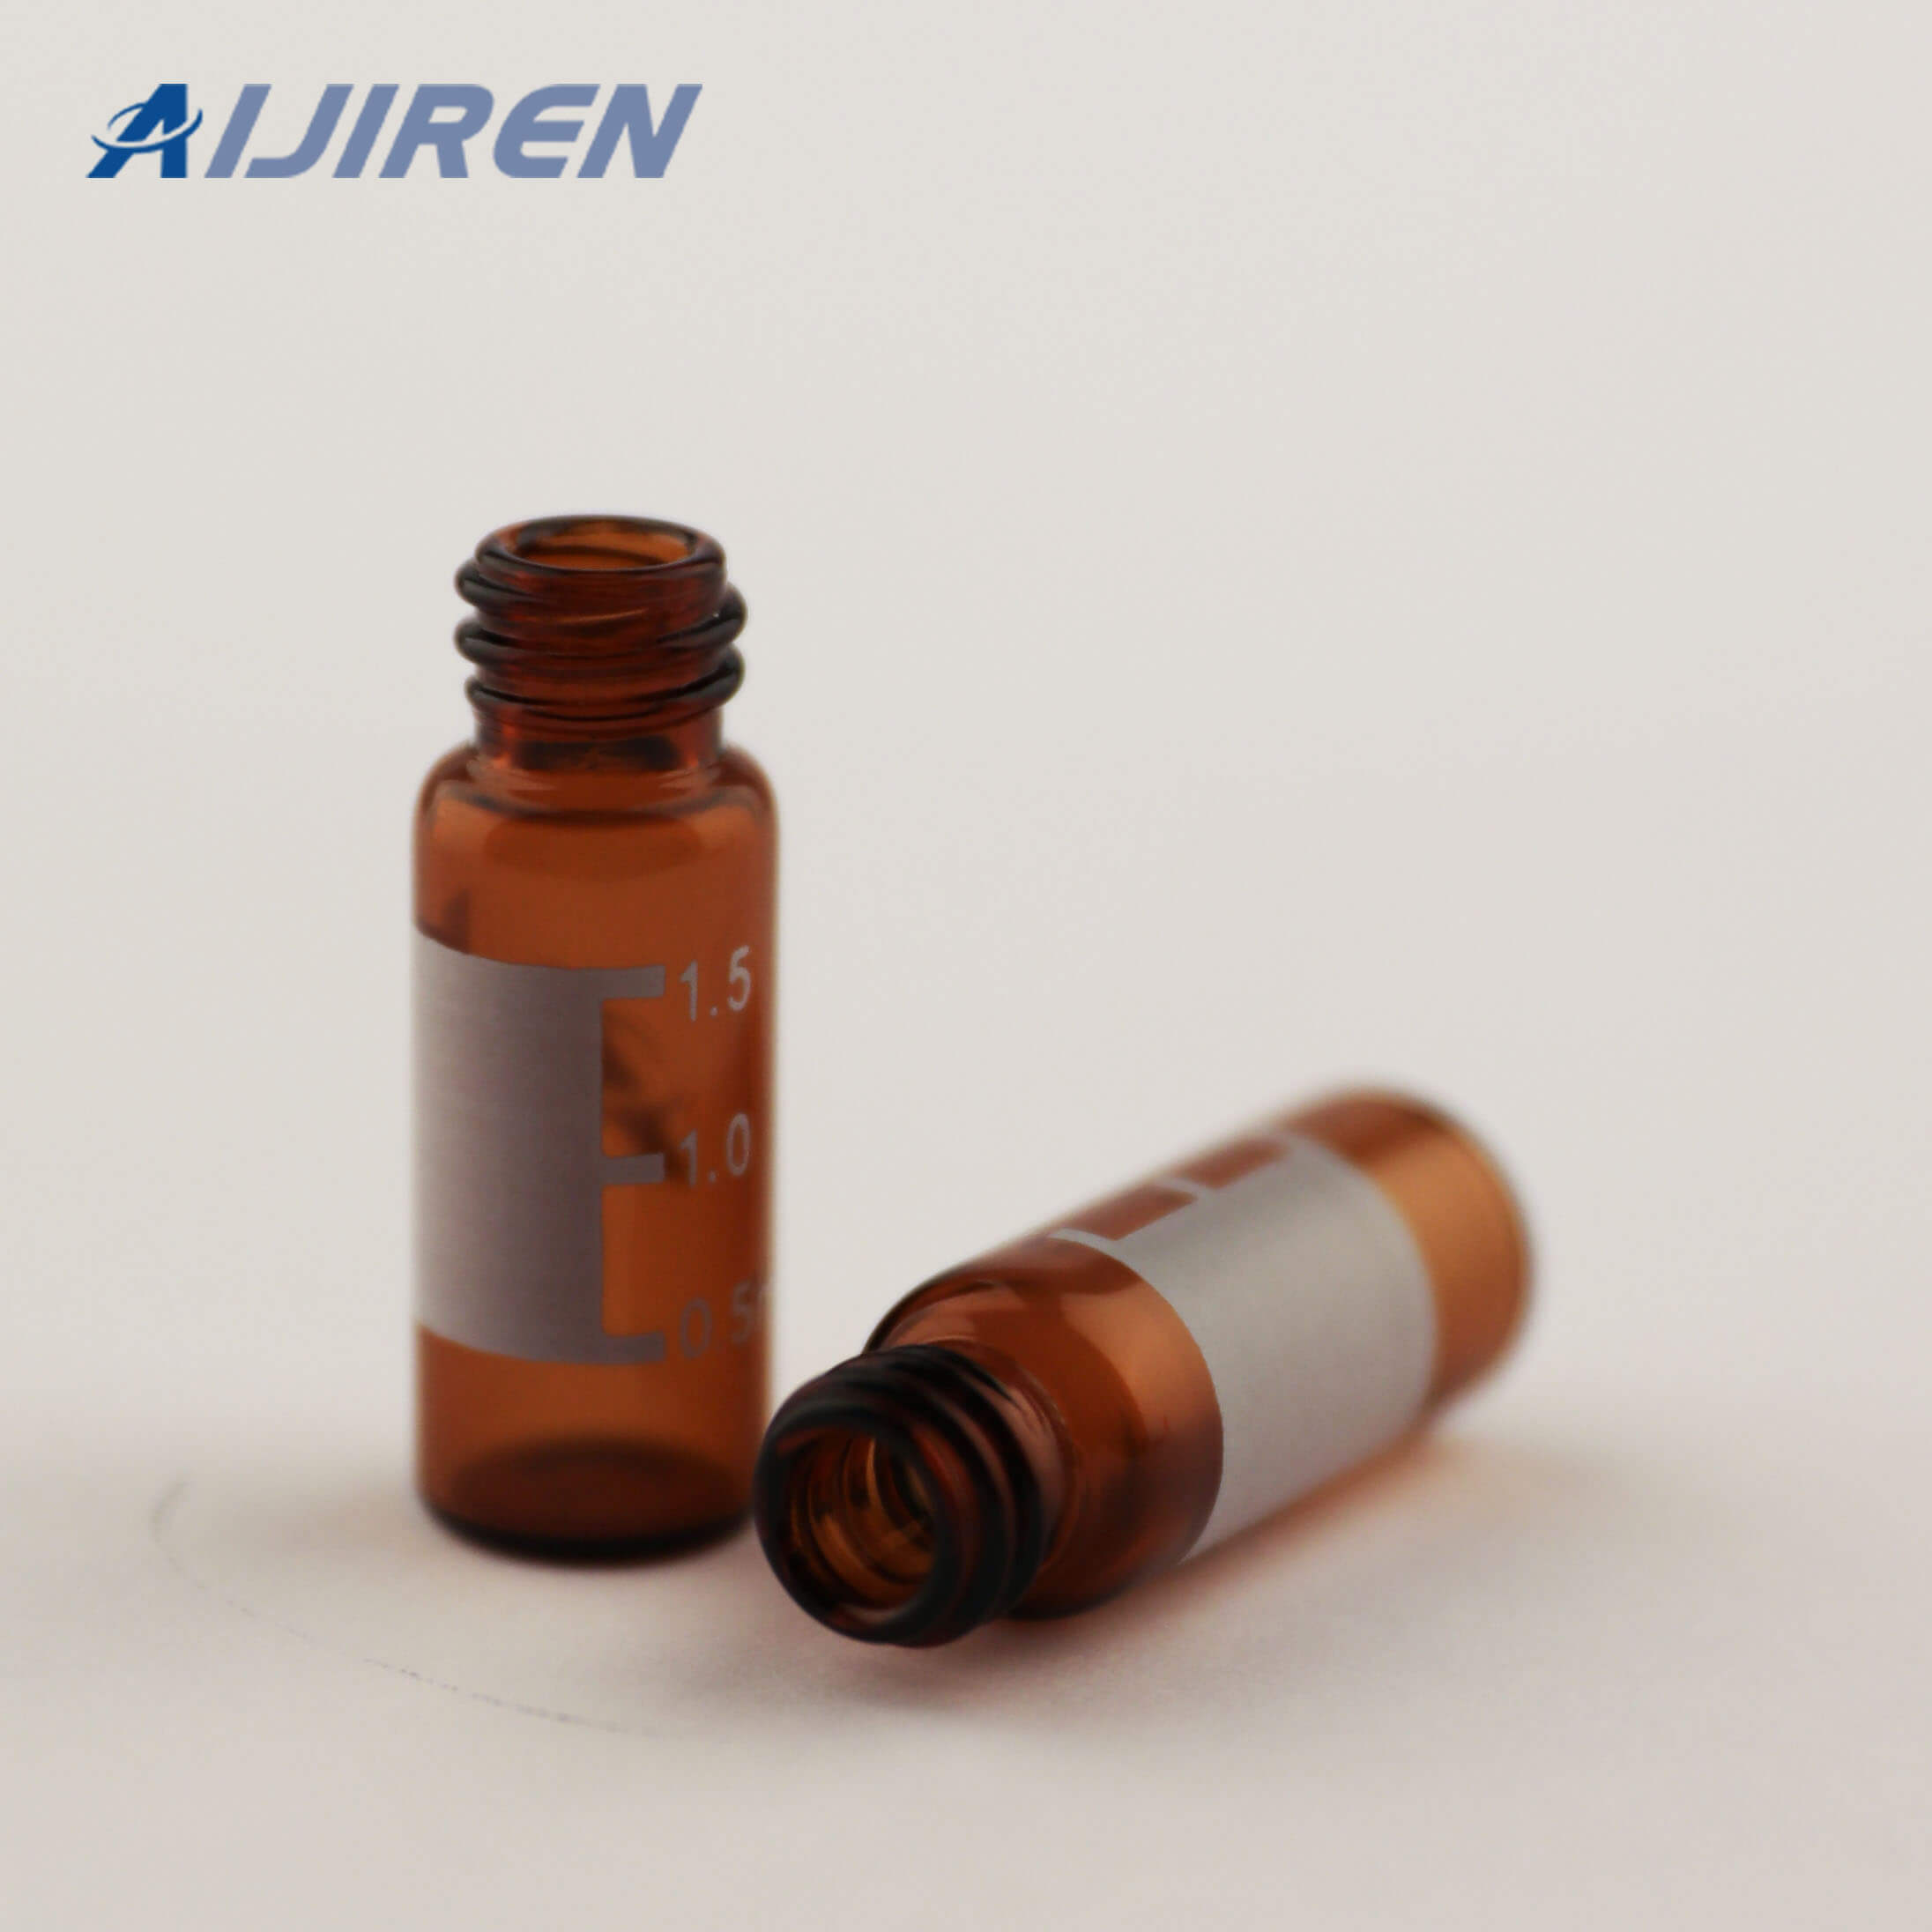 20ml headspace vial2ml HPLC Vials in 8mm for WATERS